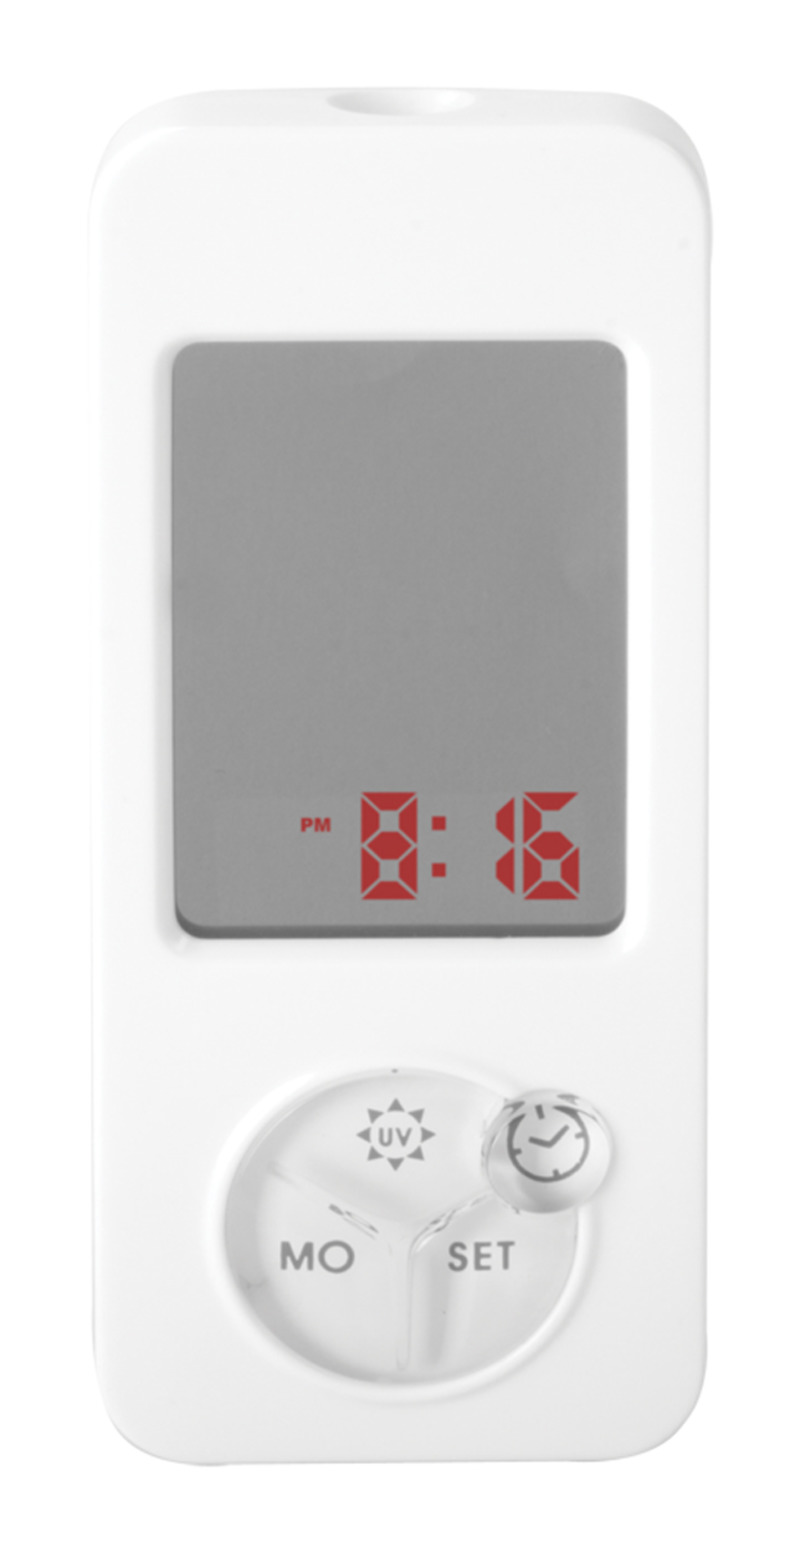 Radion uv sensor and mirror